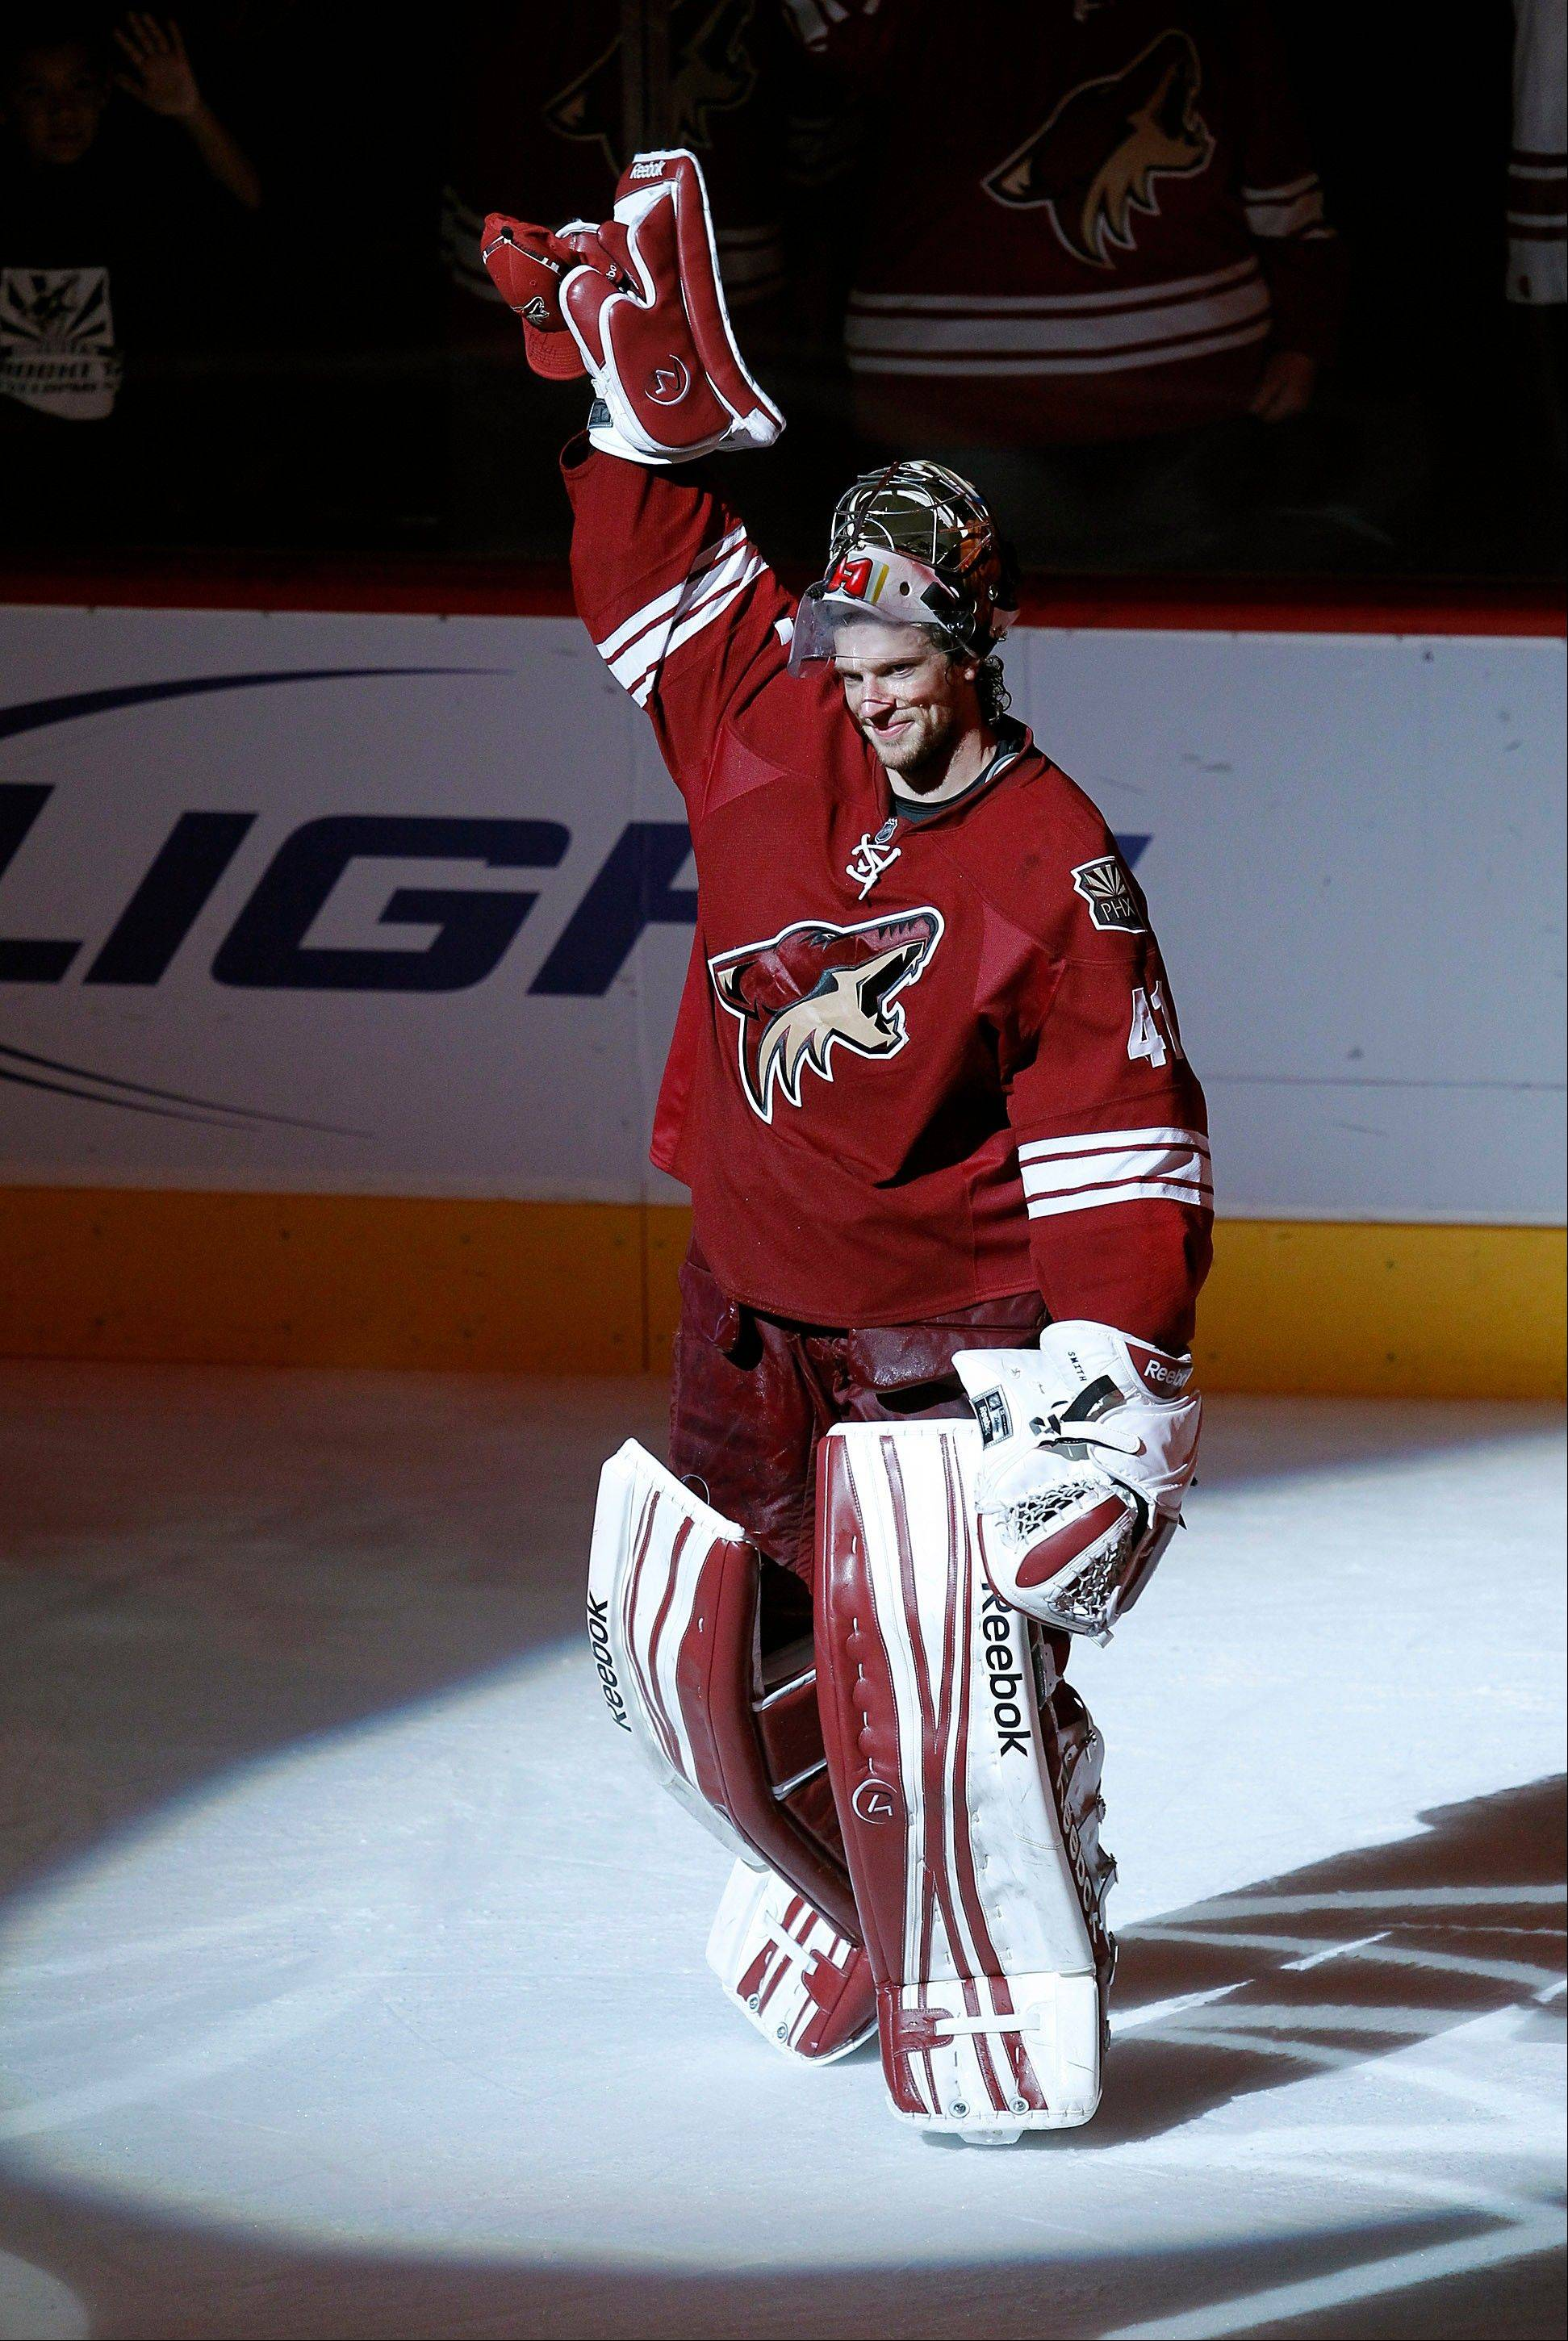 Mike Smith allowed just 2 goals in a five-game winning streak to close the Coyotes' regular season. He compiled a 38-18-10 record and a 2.21 goals-against average with 8 shutouts.